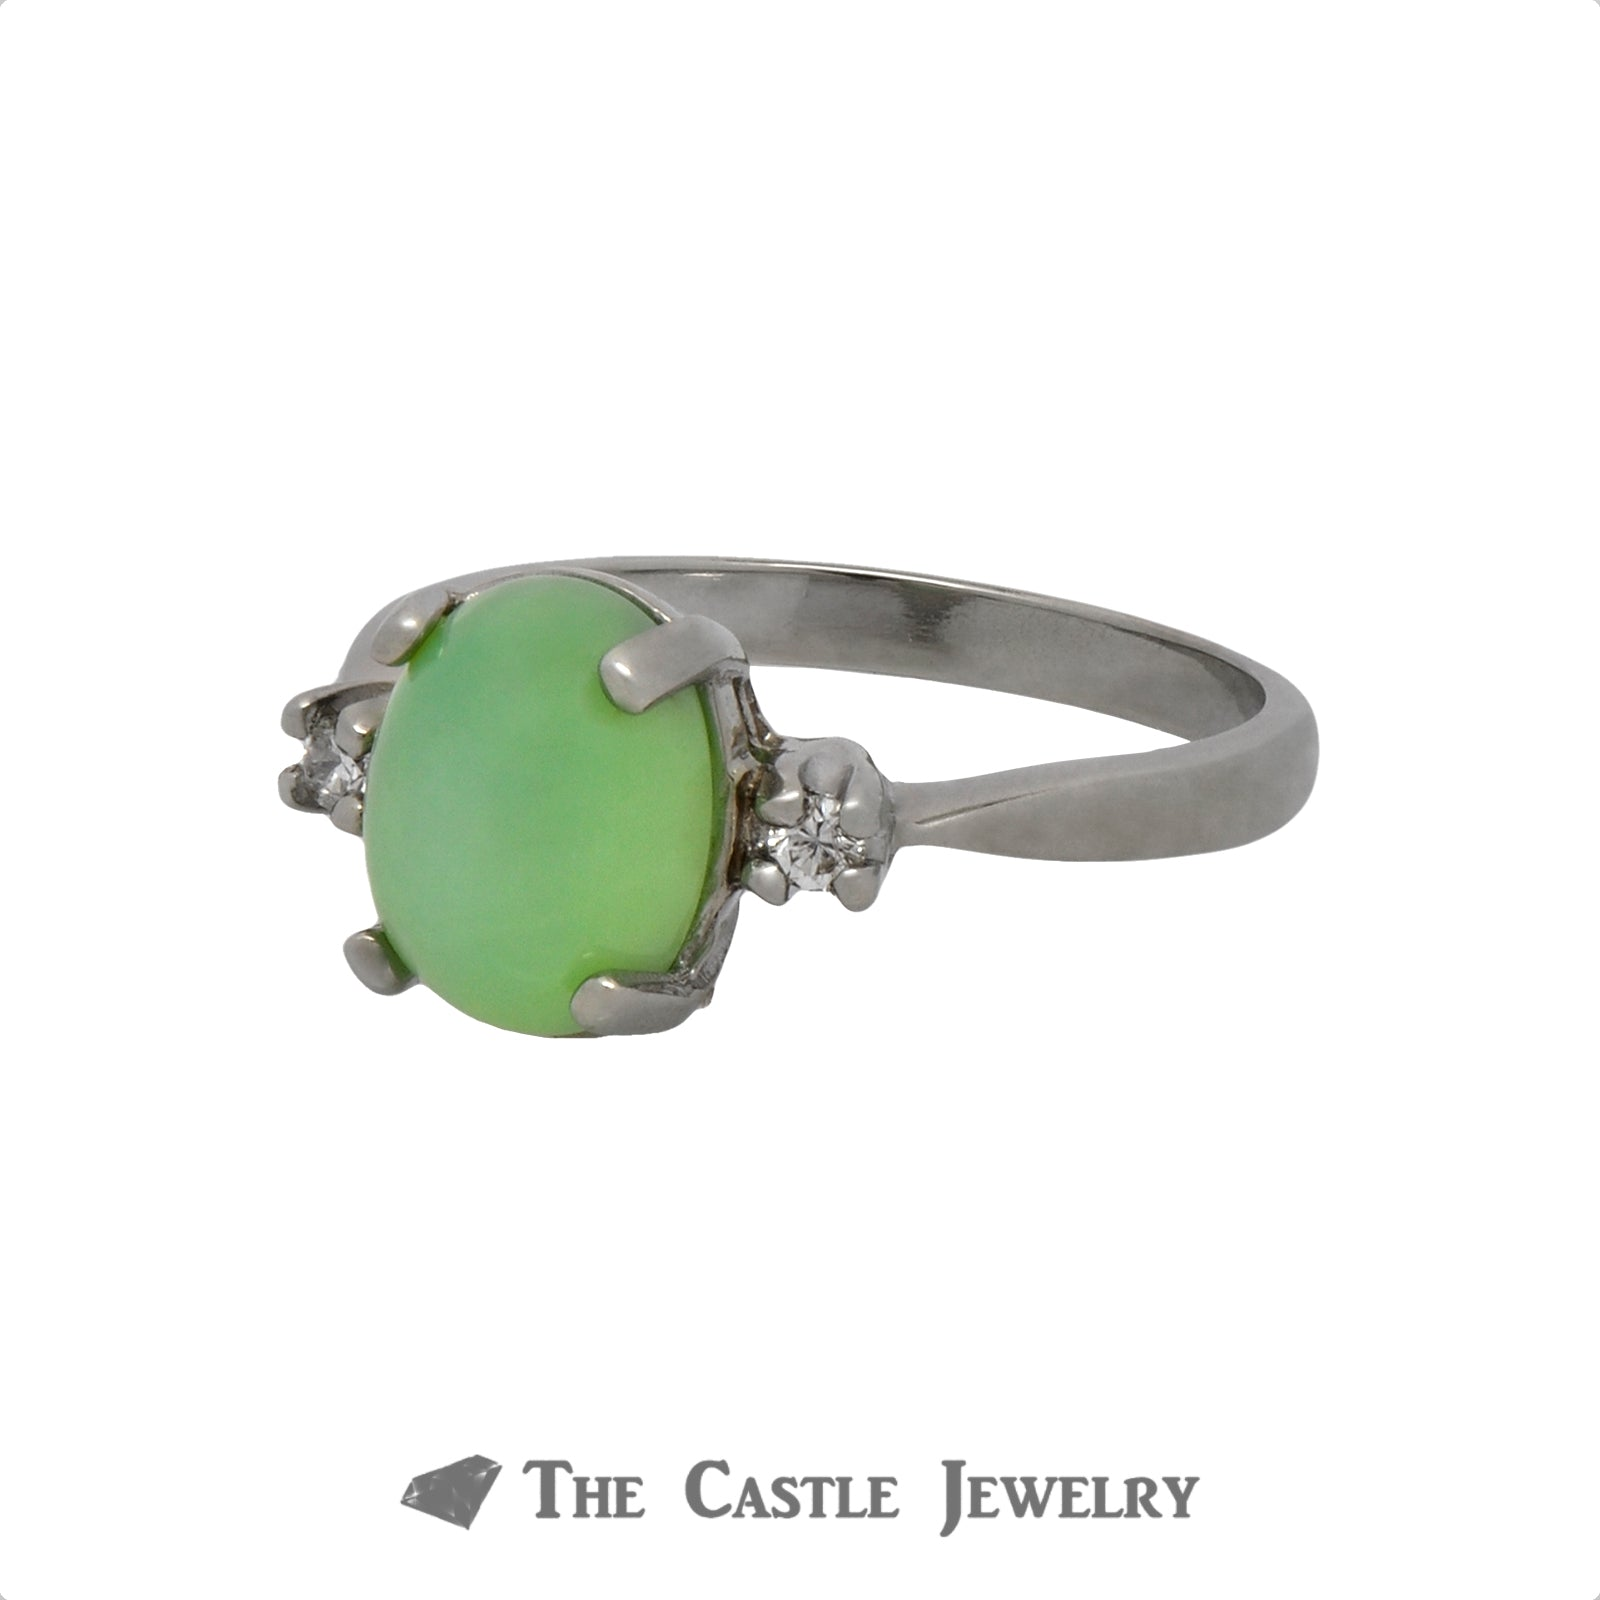 Green Lindy Star Ring with Diamond Accents Crafted in 10k White Gold-2